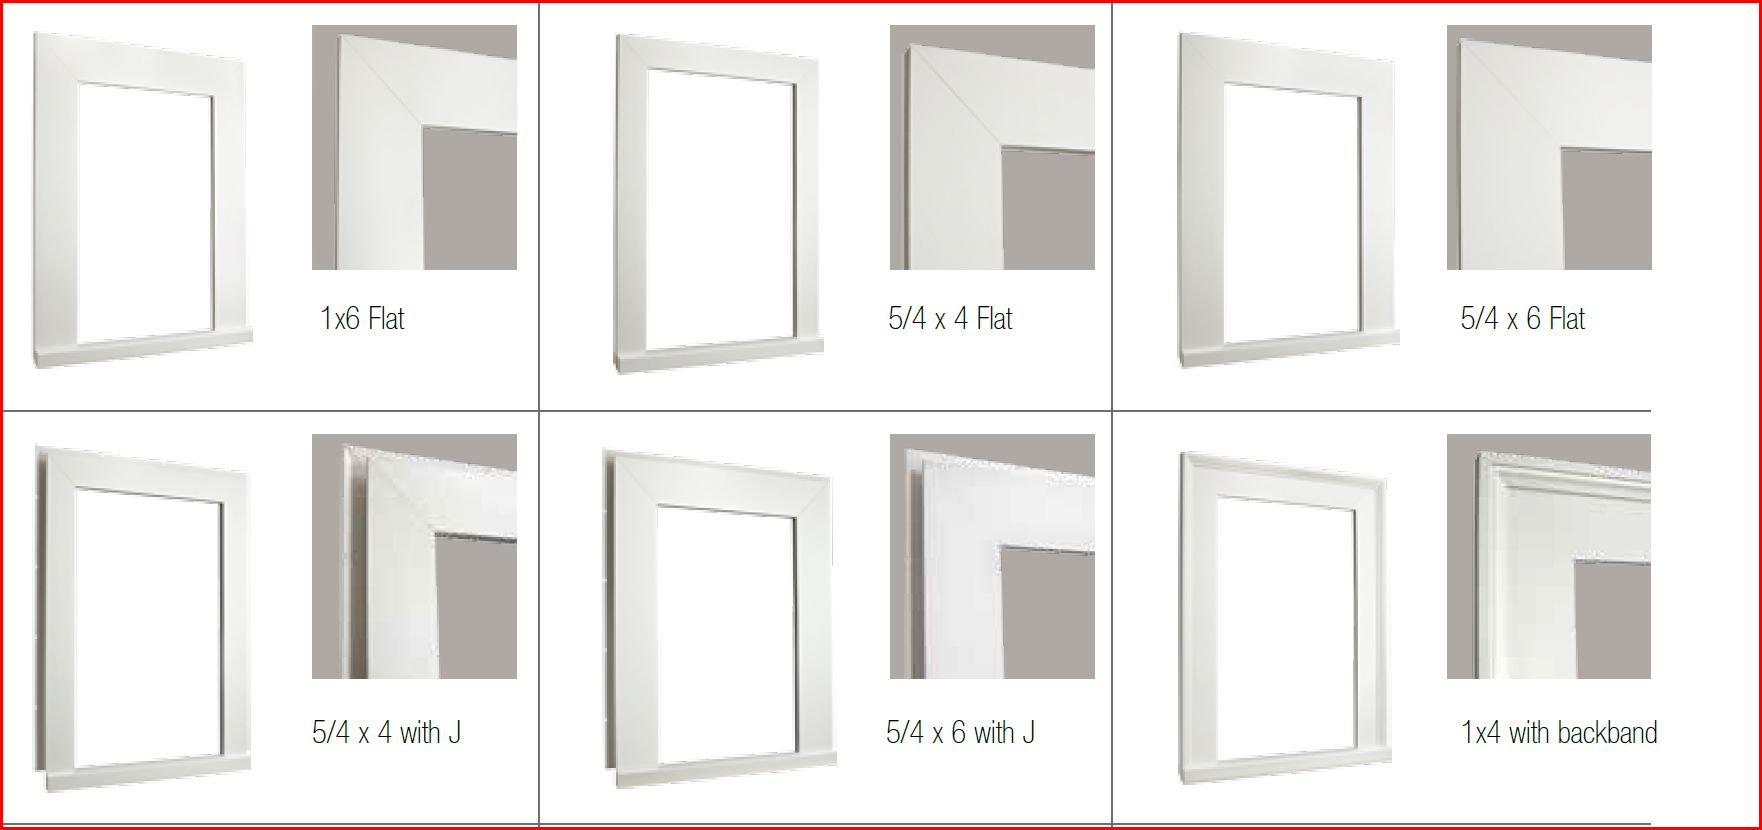 Vinyl window casing - How